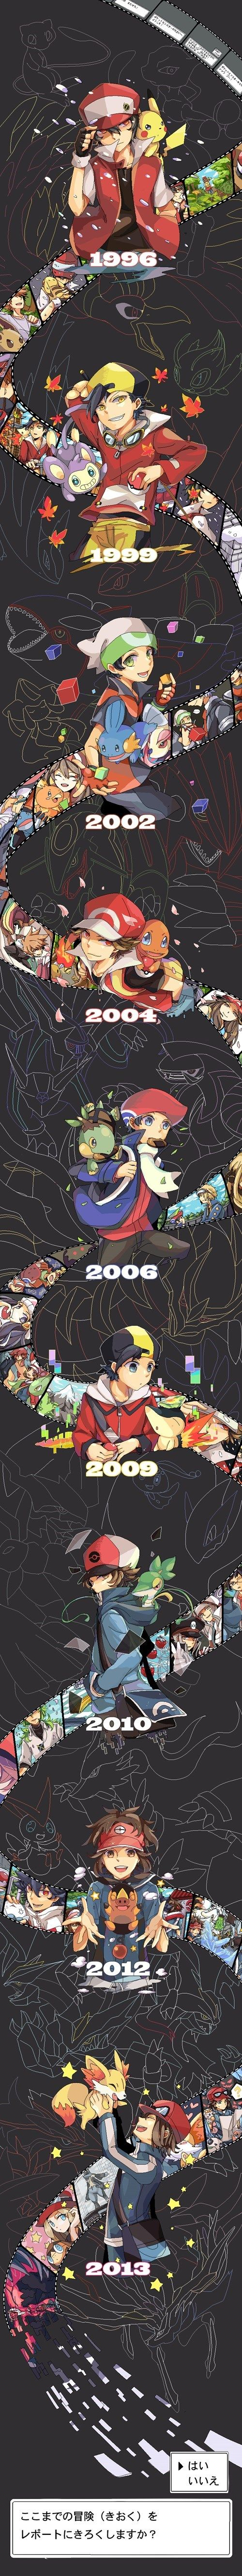 Pokémon - Pokémon, from the beginning until now. I wish I knew what the bottom said. I can only make out the kana characters. Terrible with kanji.